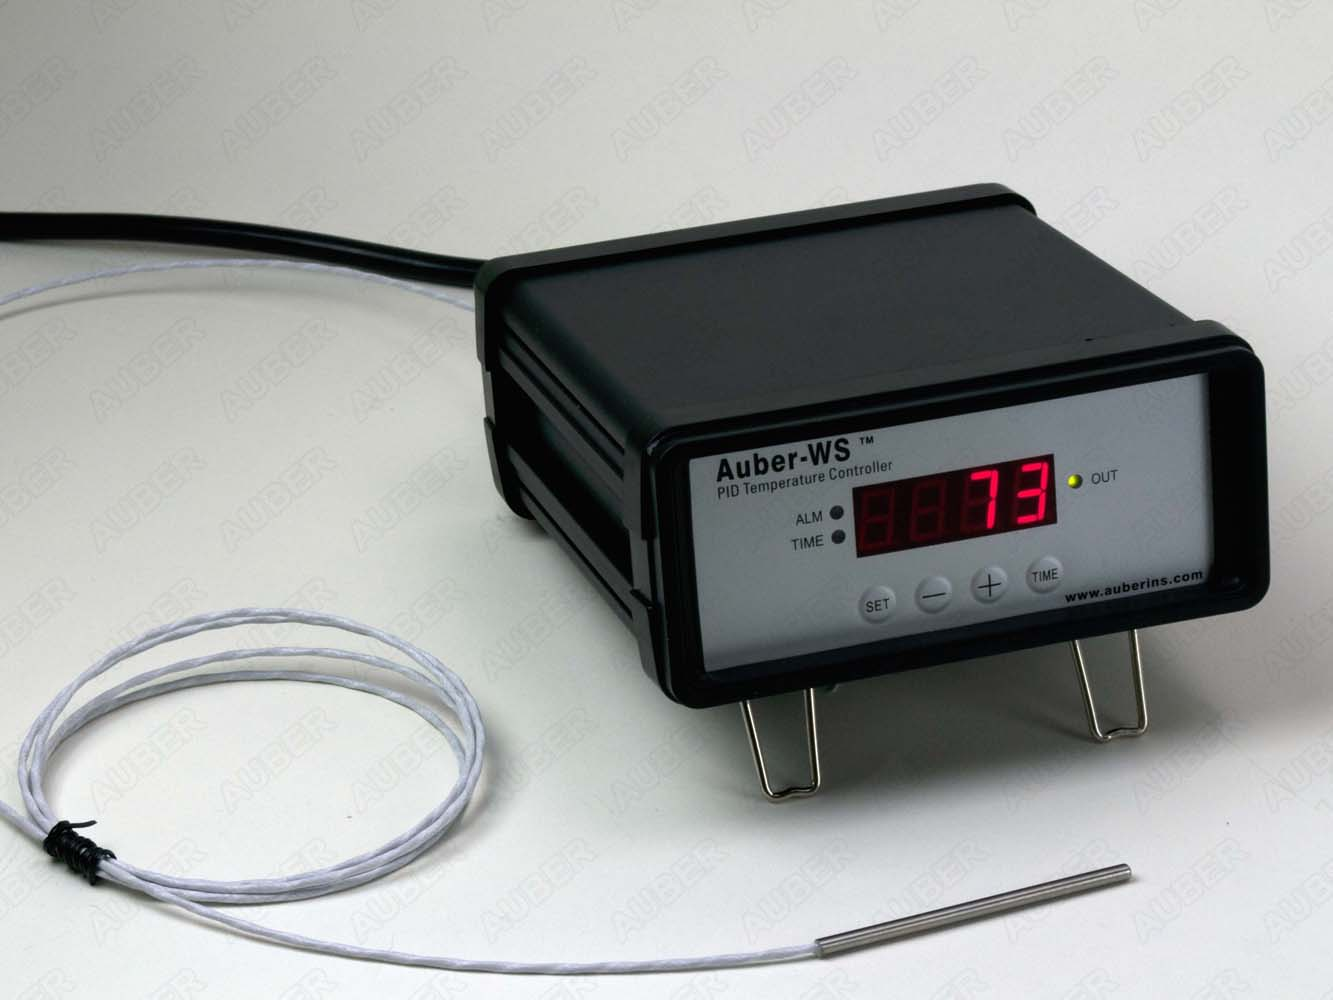 WS1210GPH_F auberins com, temperature control solutions for home and industry  at webbmarketing.co